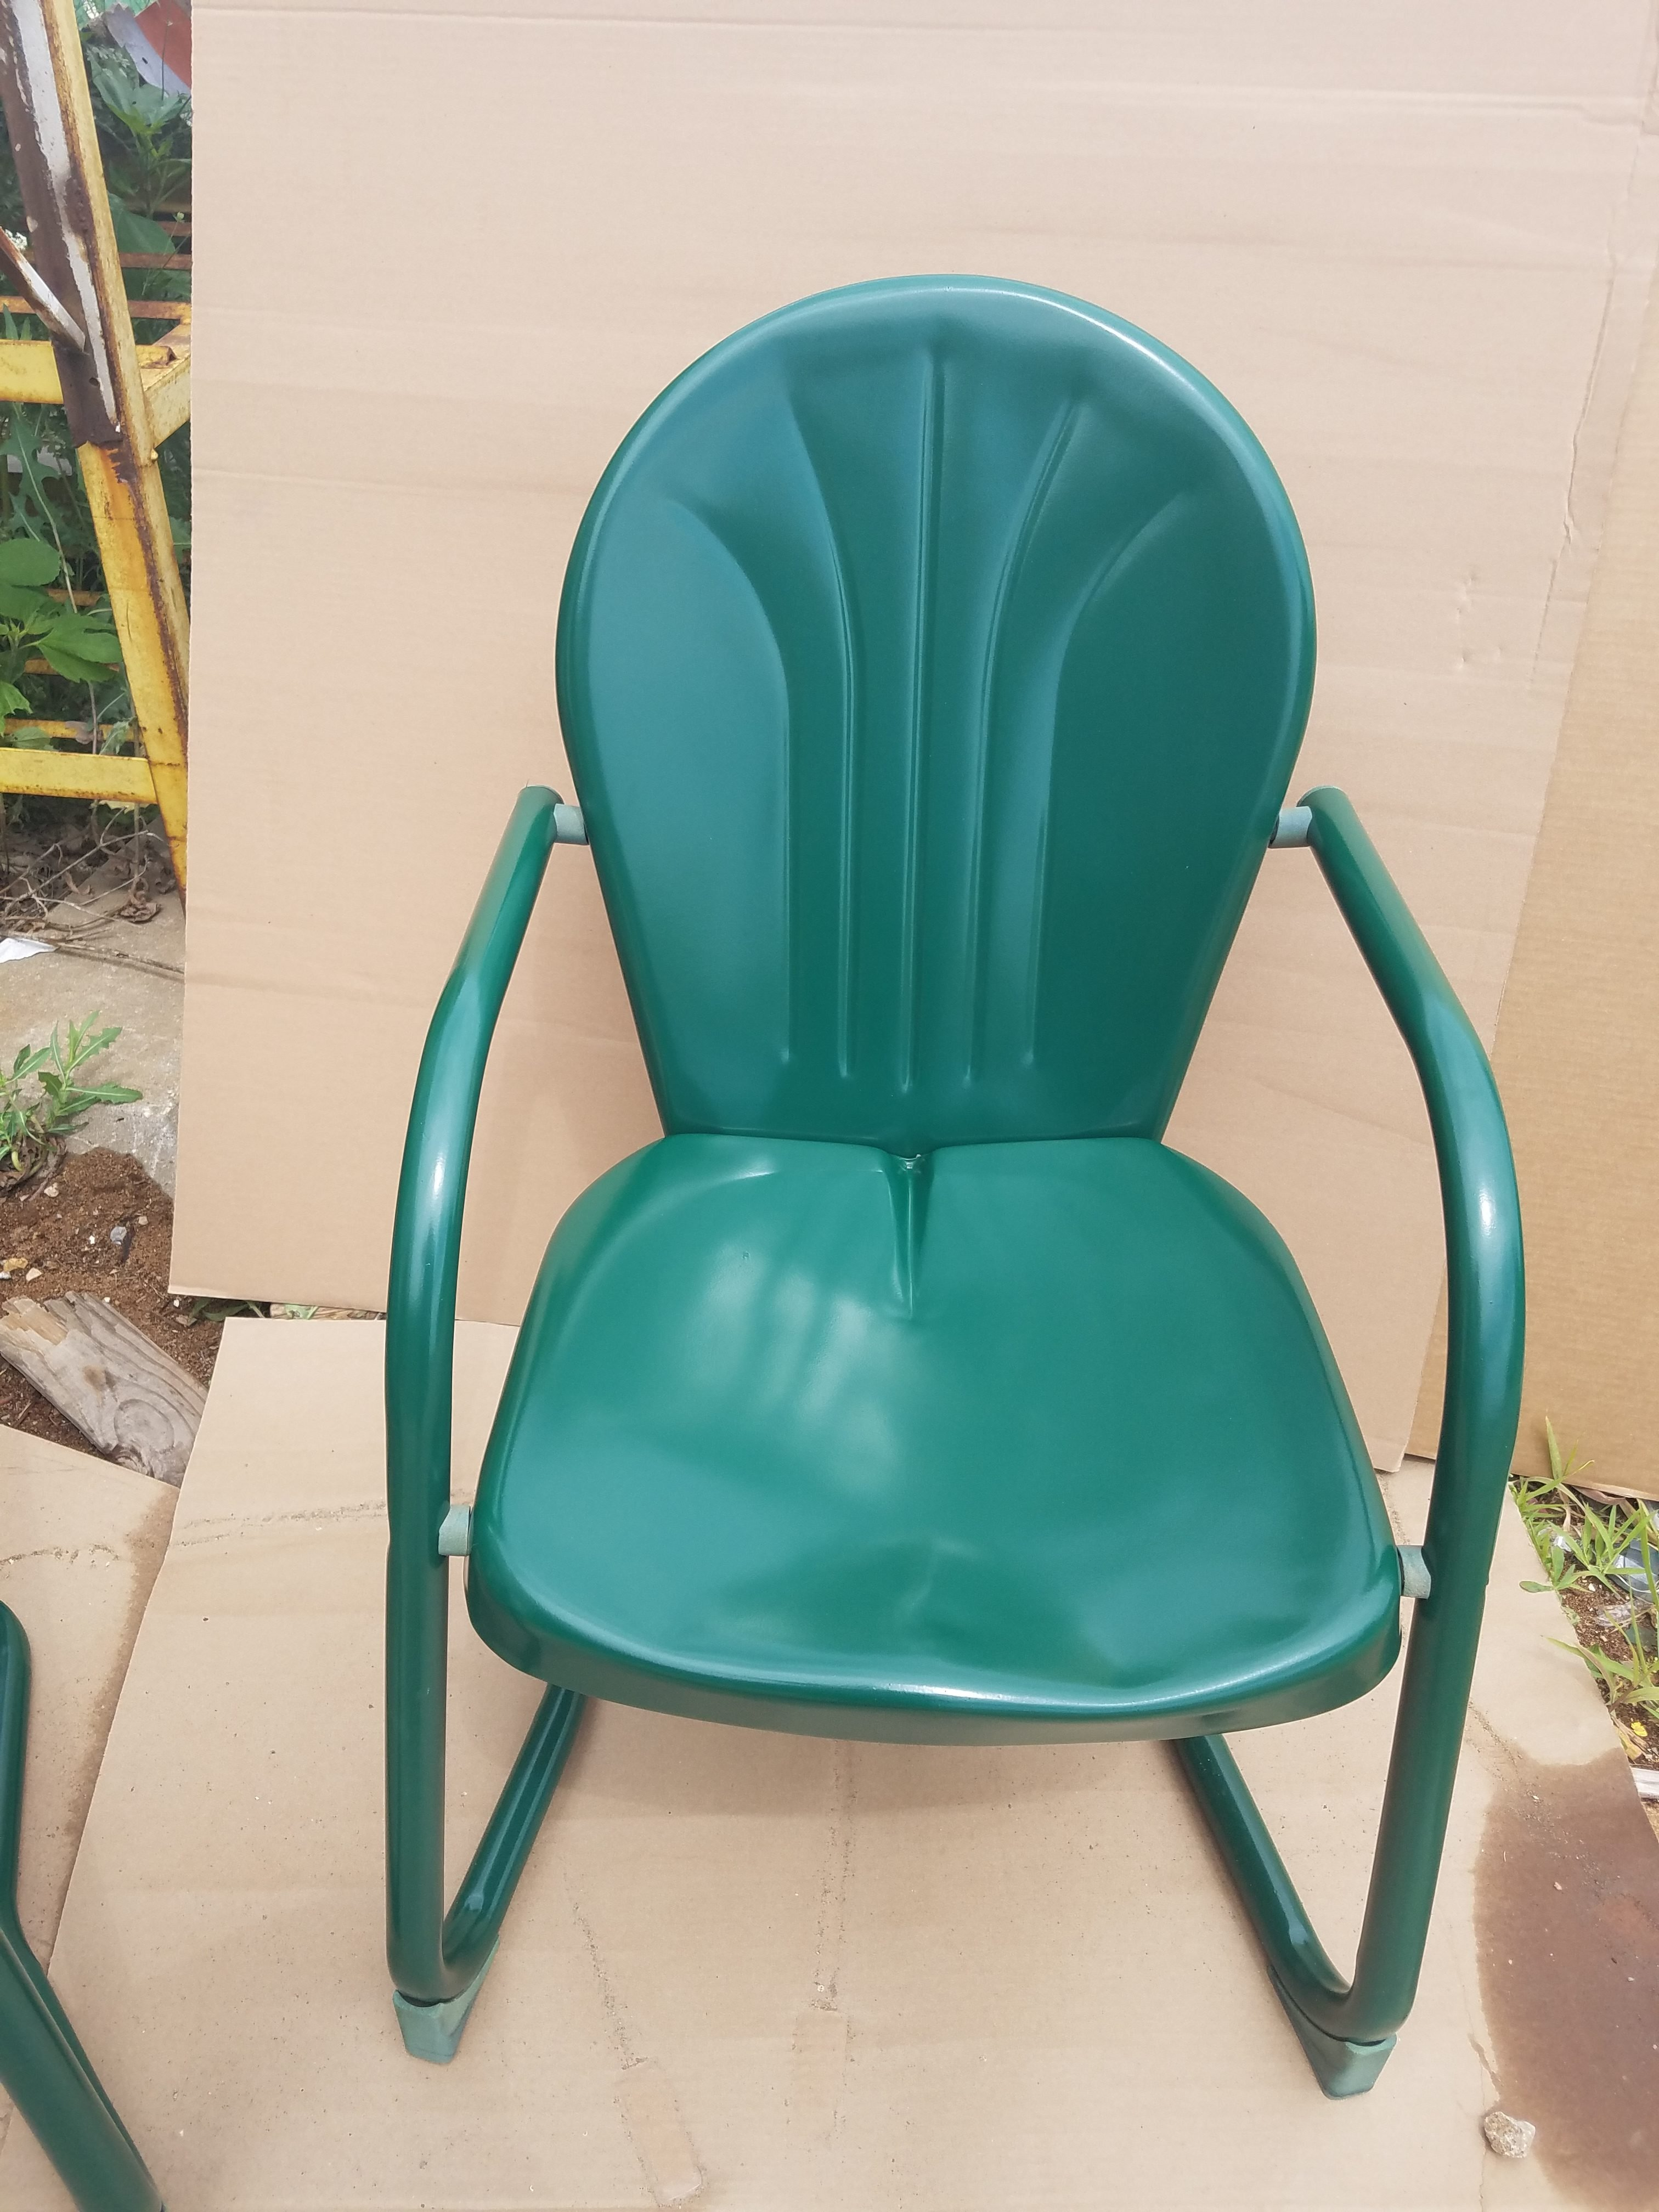 Green chair powder coated outdoor furniture